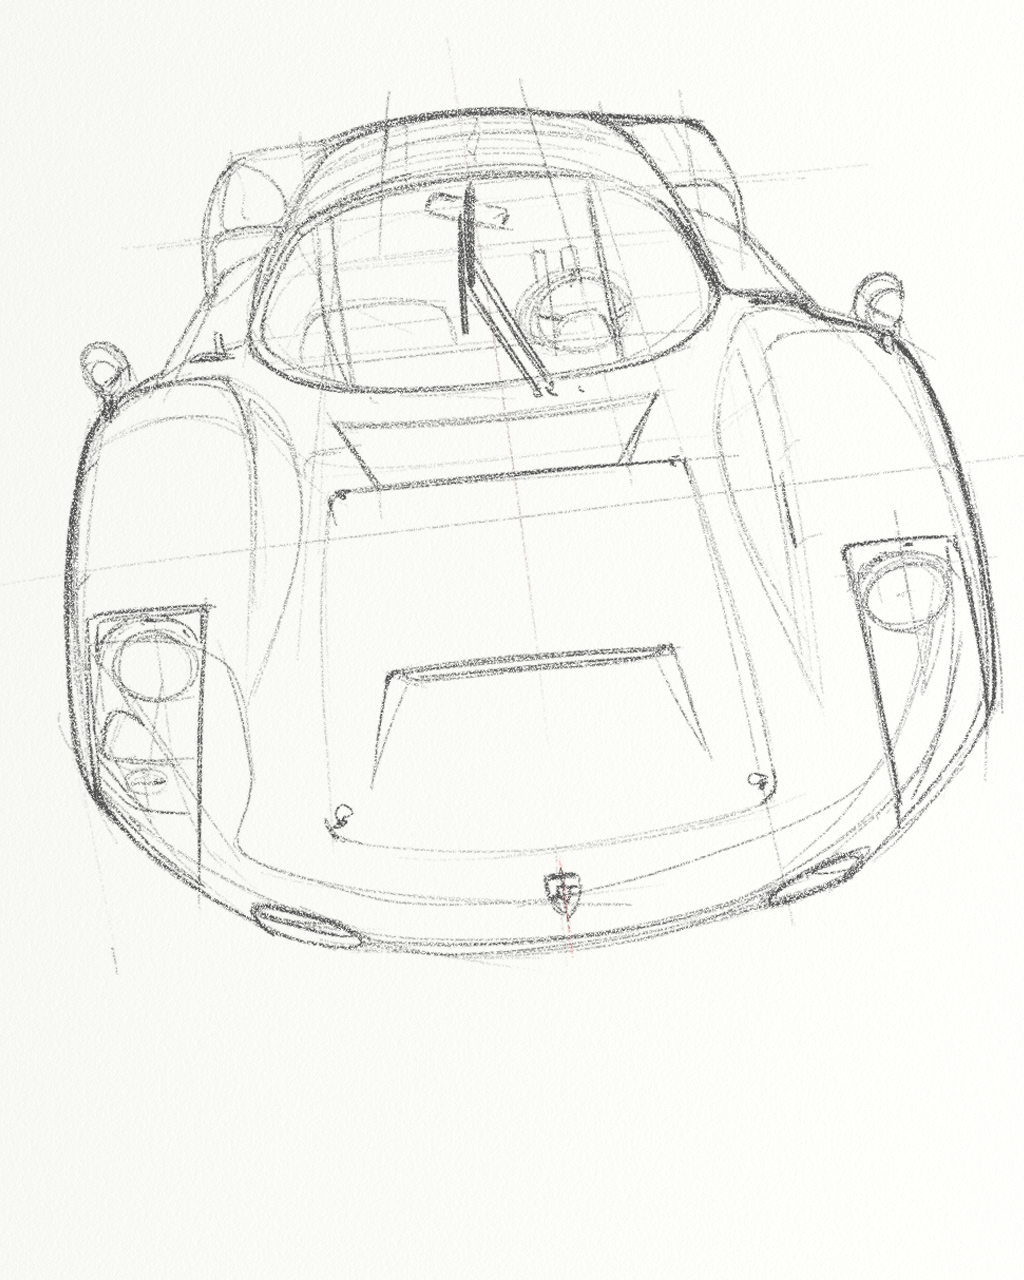 The Best Free Porsche Drawing Images Download From 262